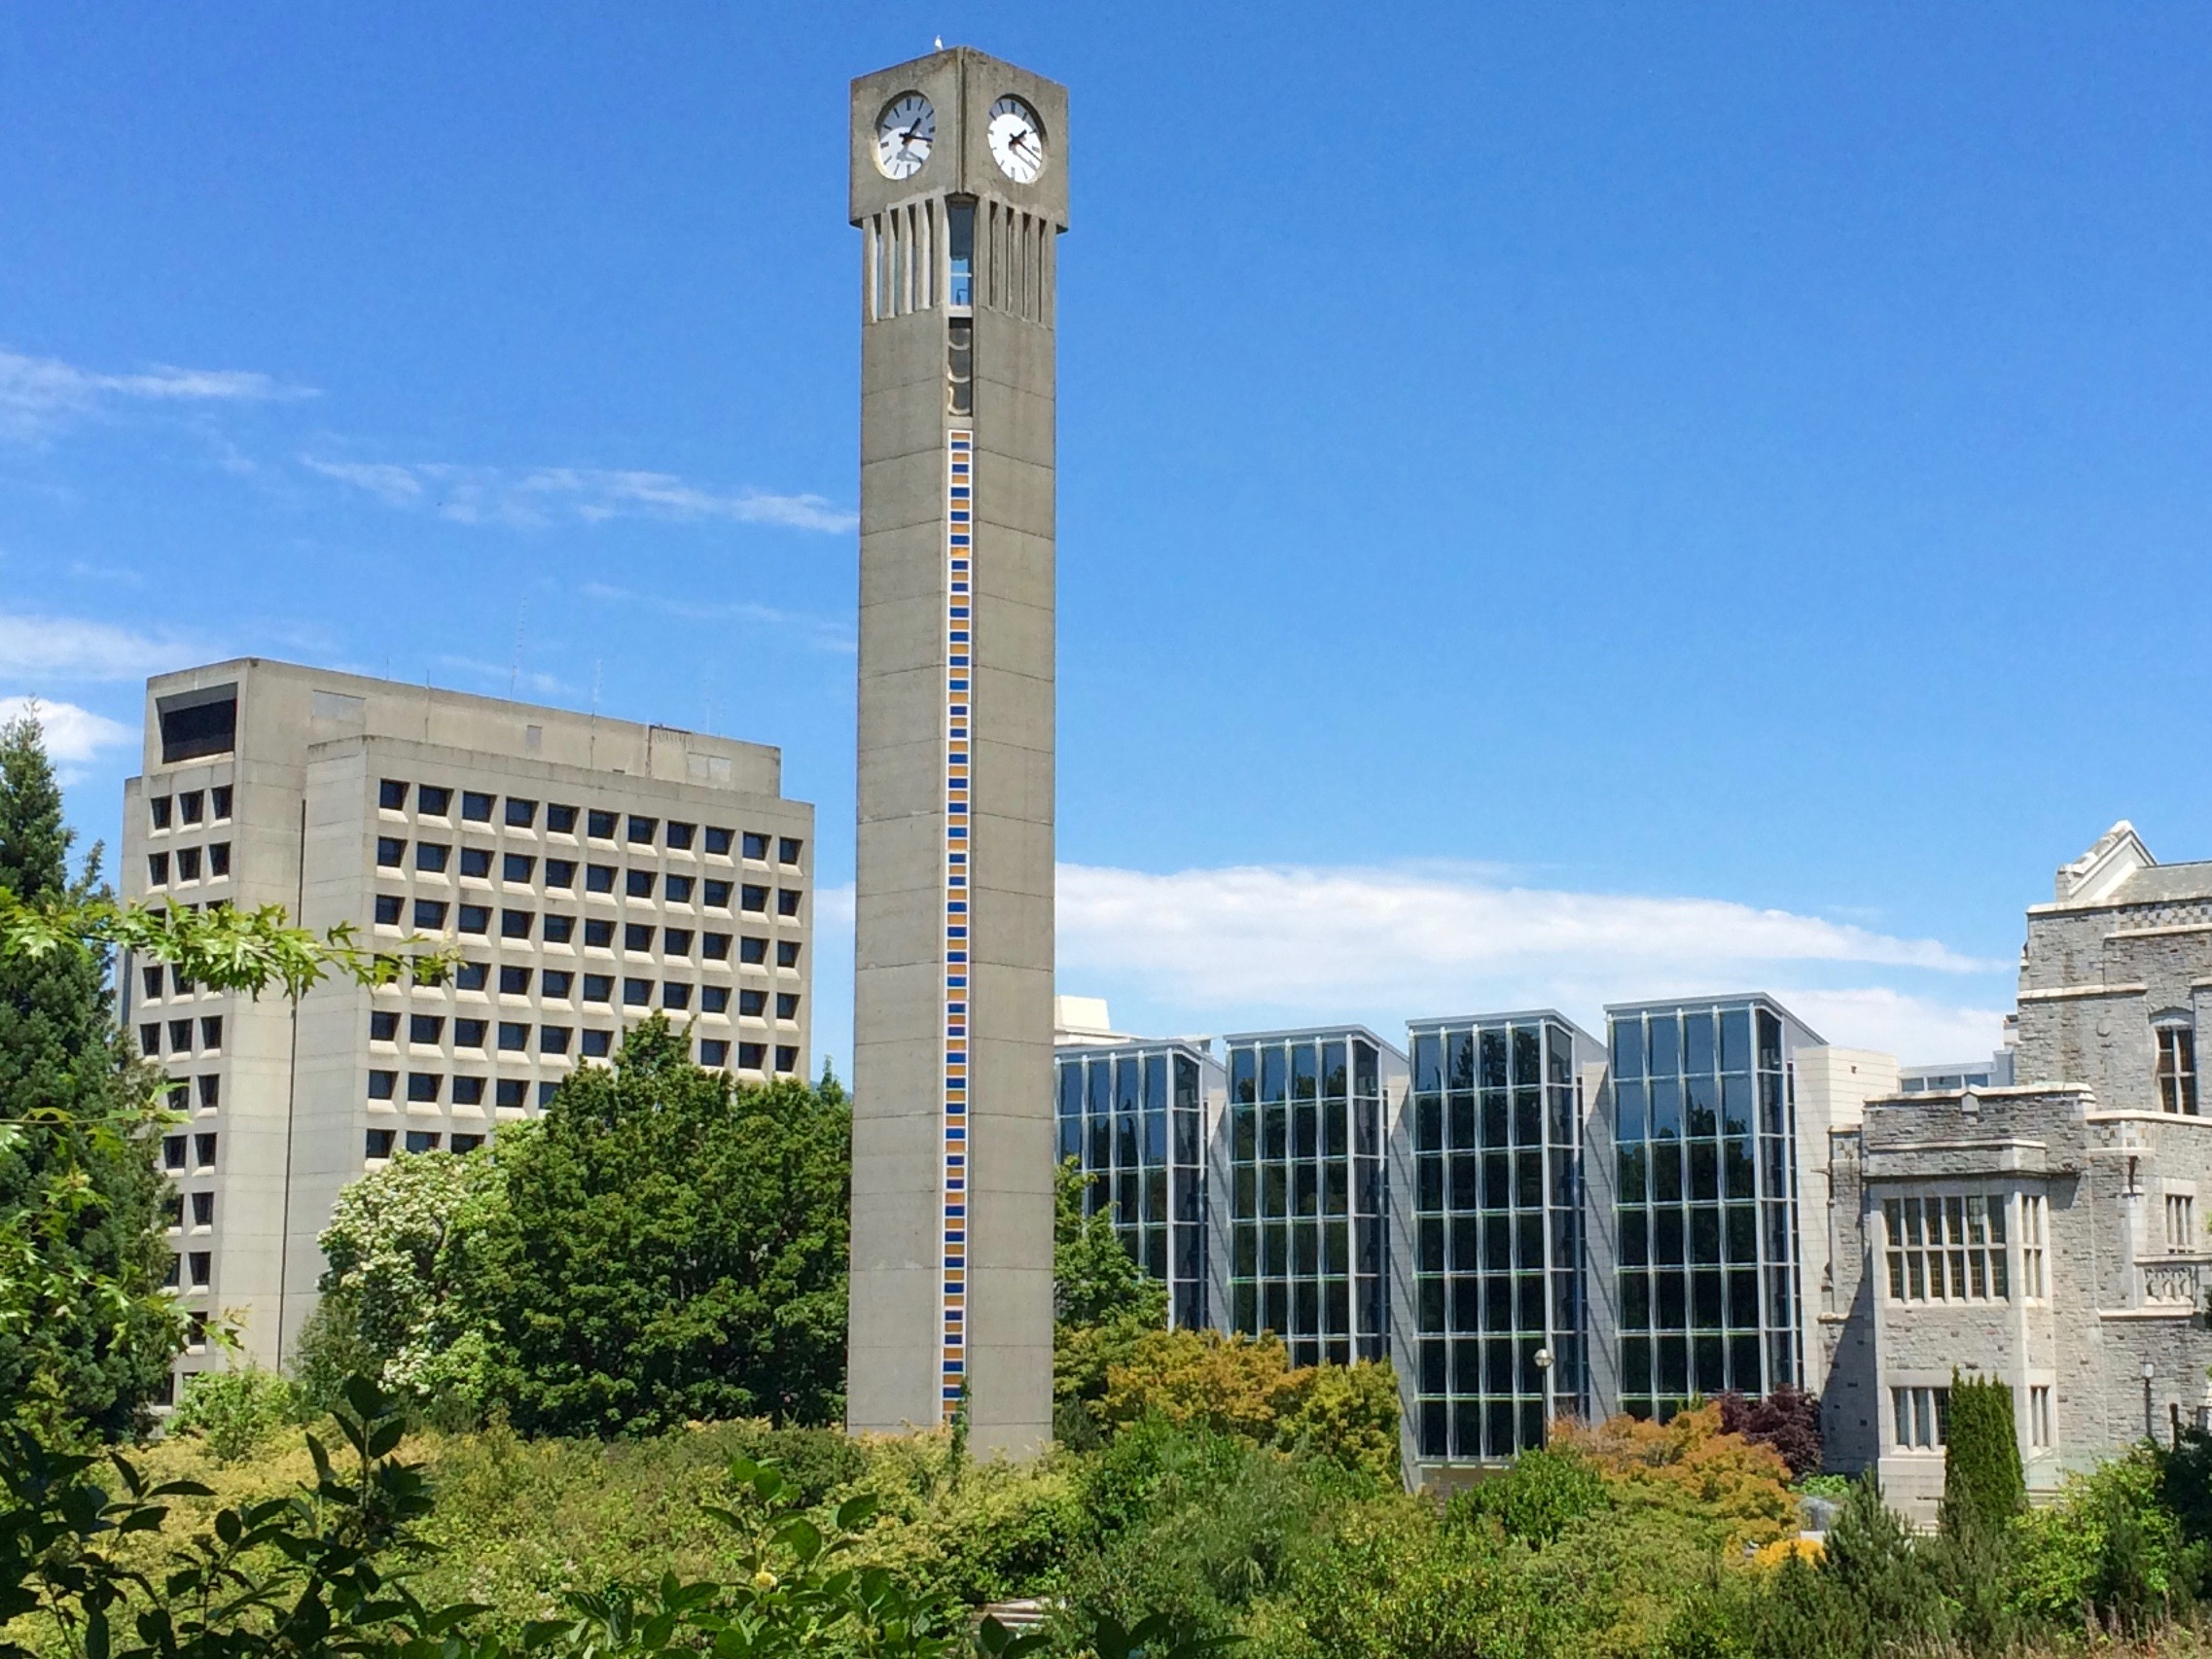 UBC Ladner clock tower